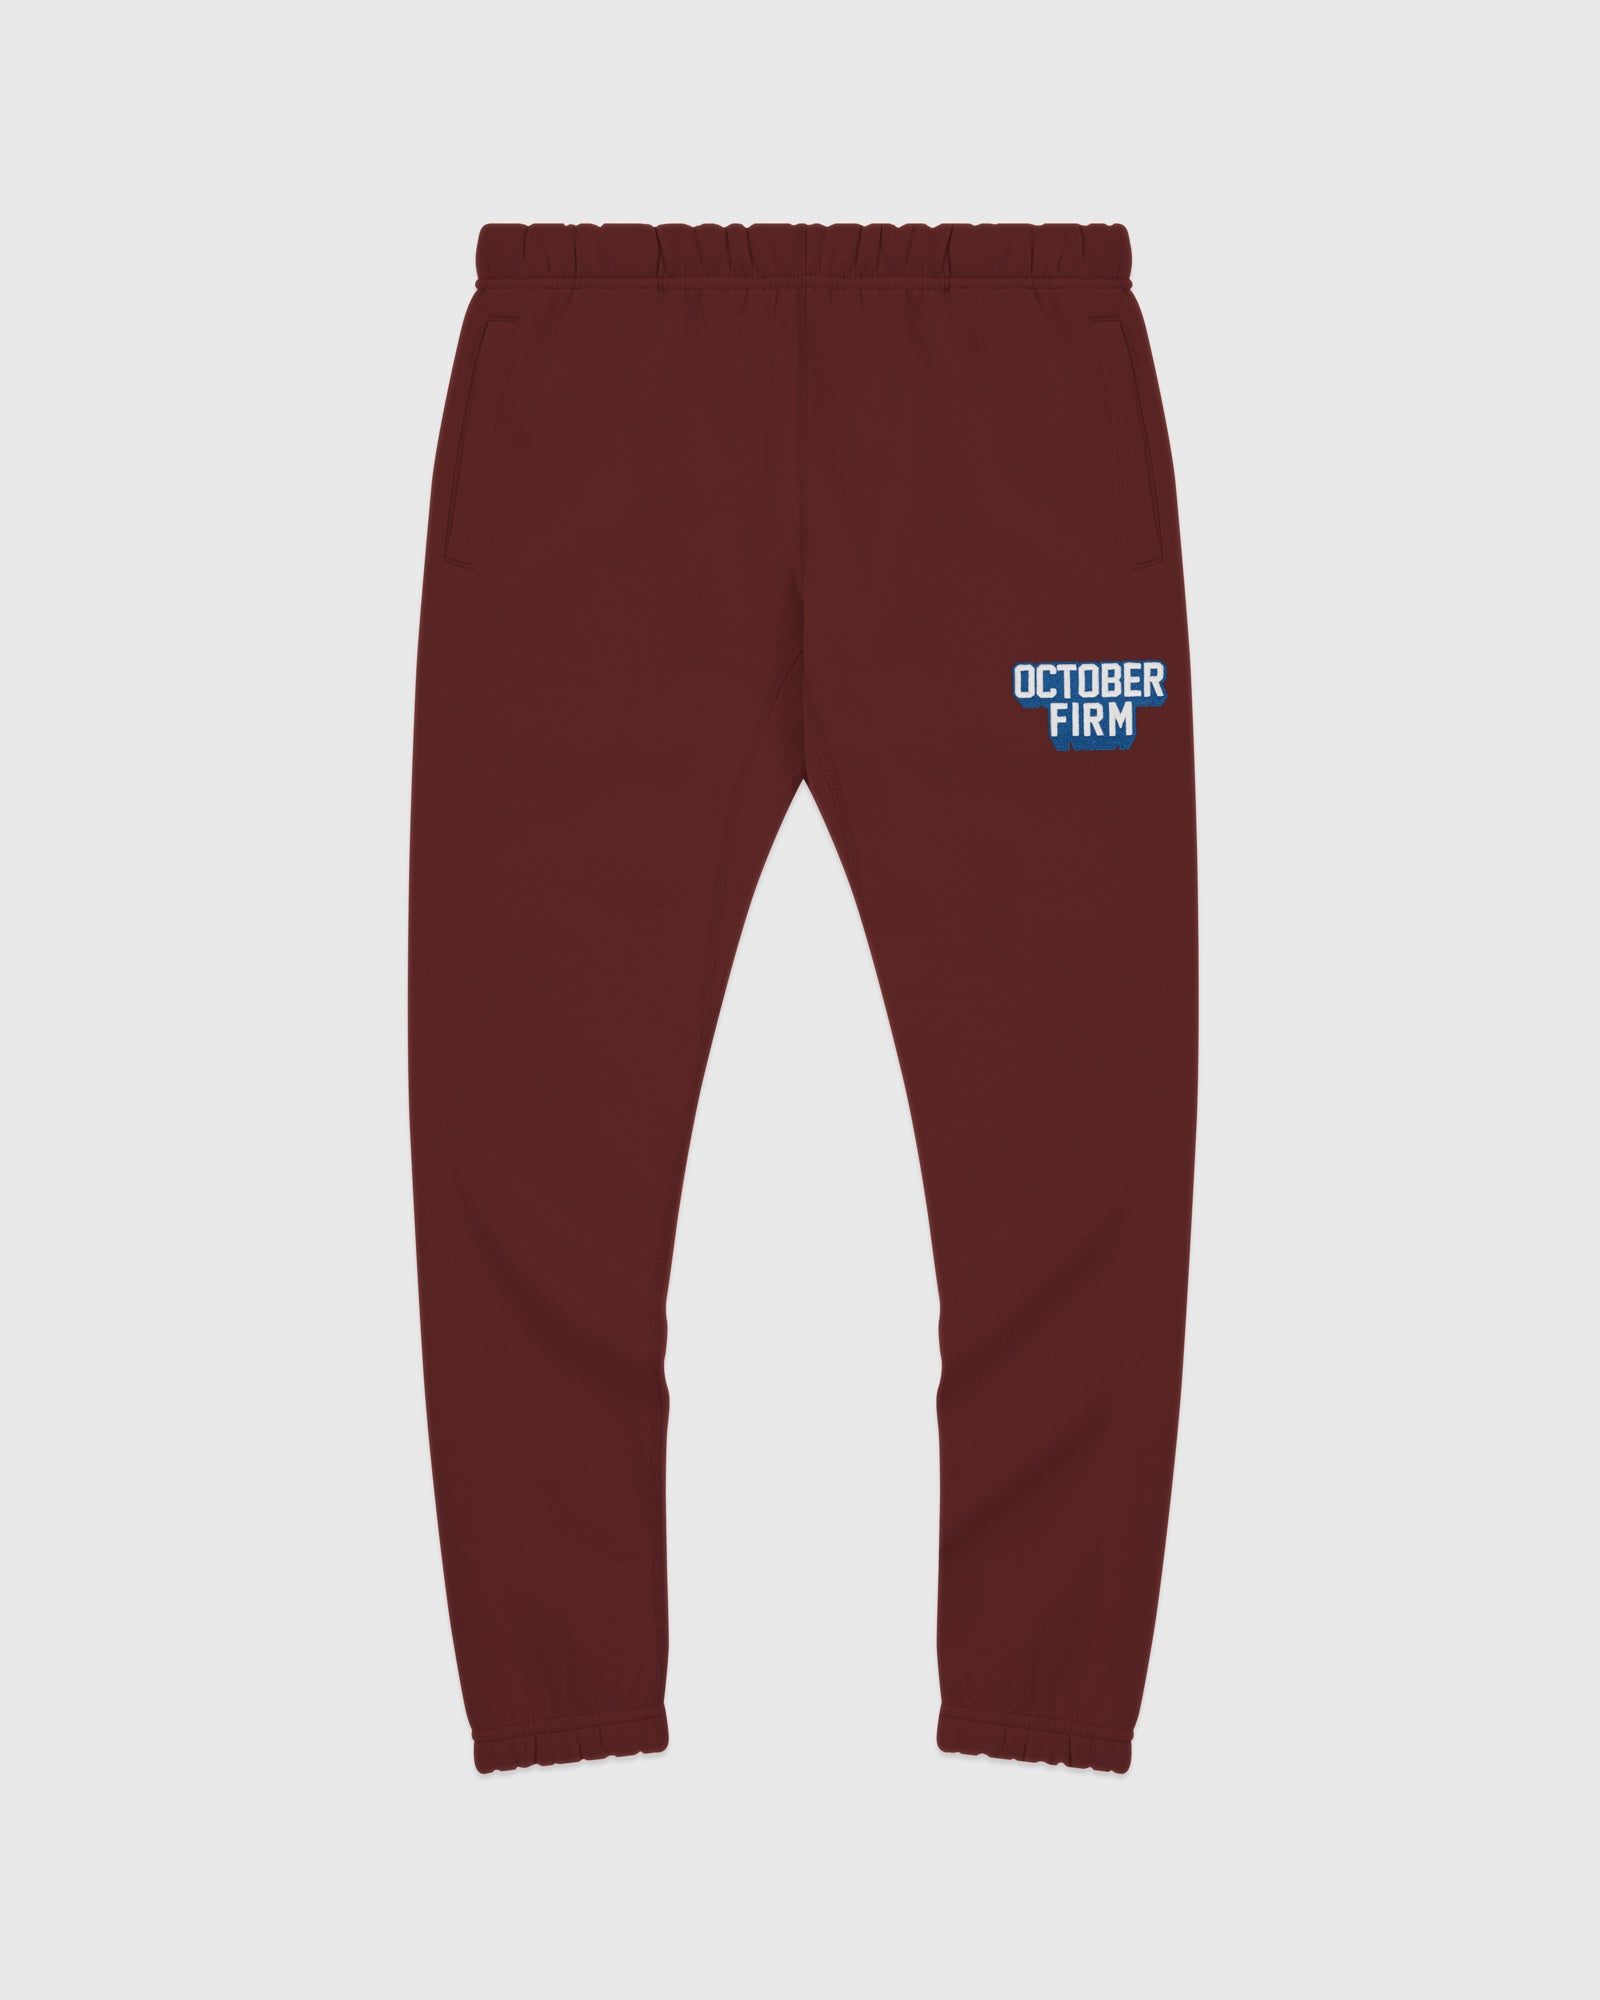 OCTOBER FIRM SHADOW SWEATPANT - BURGUNDY IMAGE #1